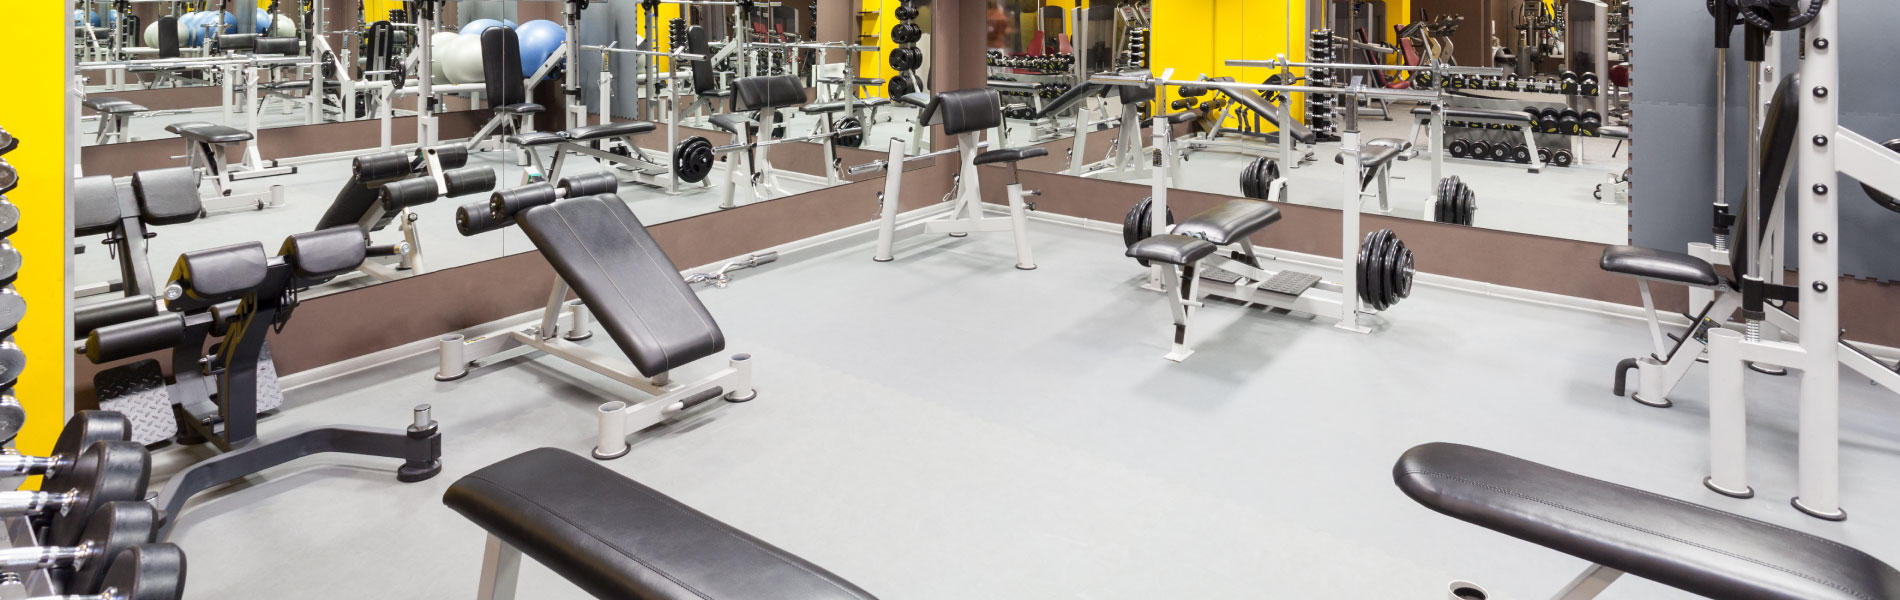 Business gains: improving the layout of your fitness center